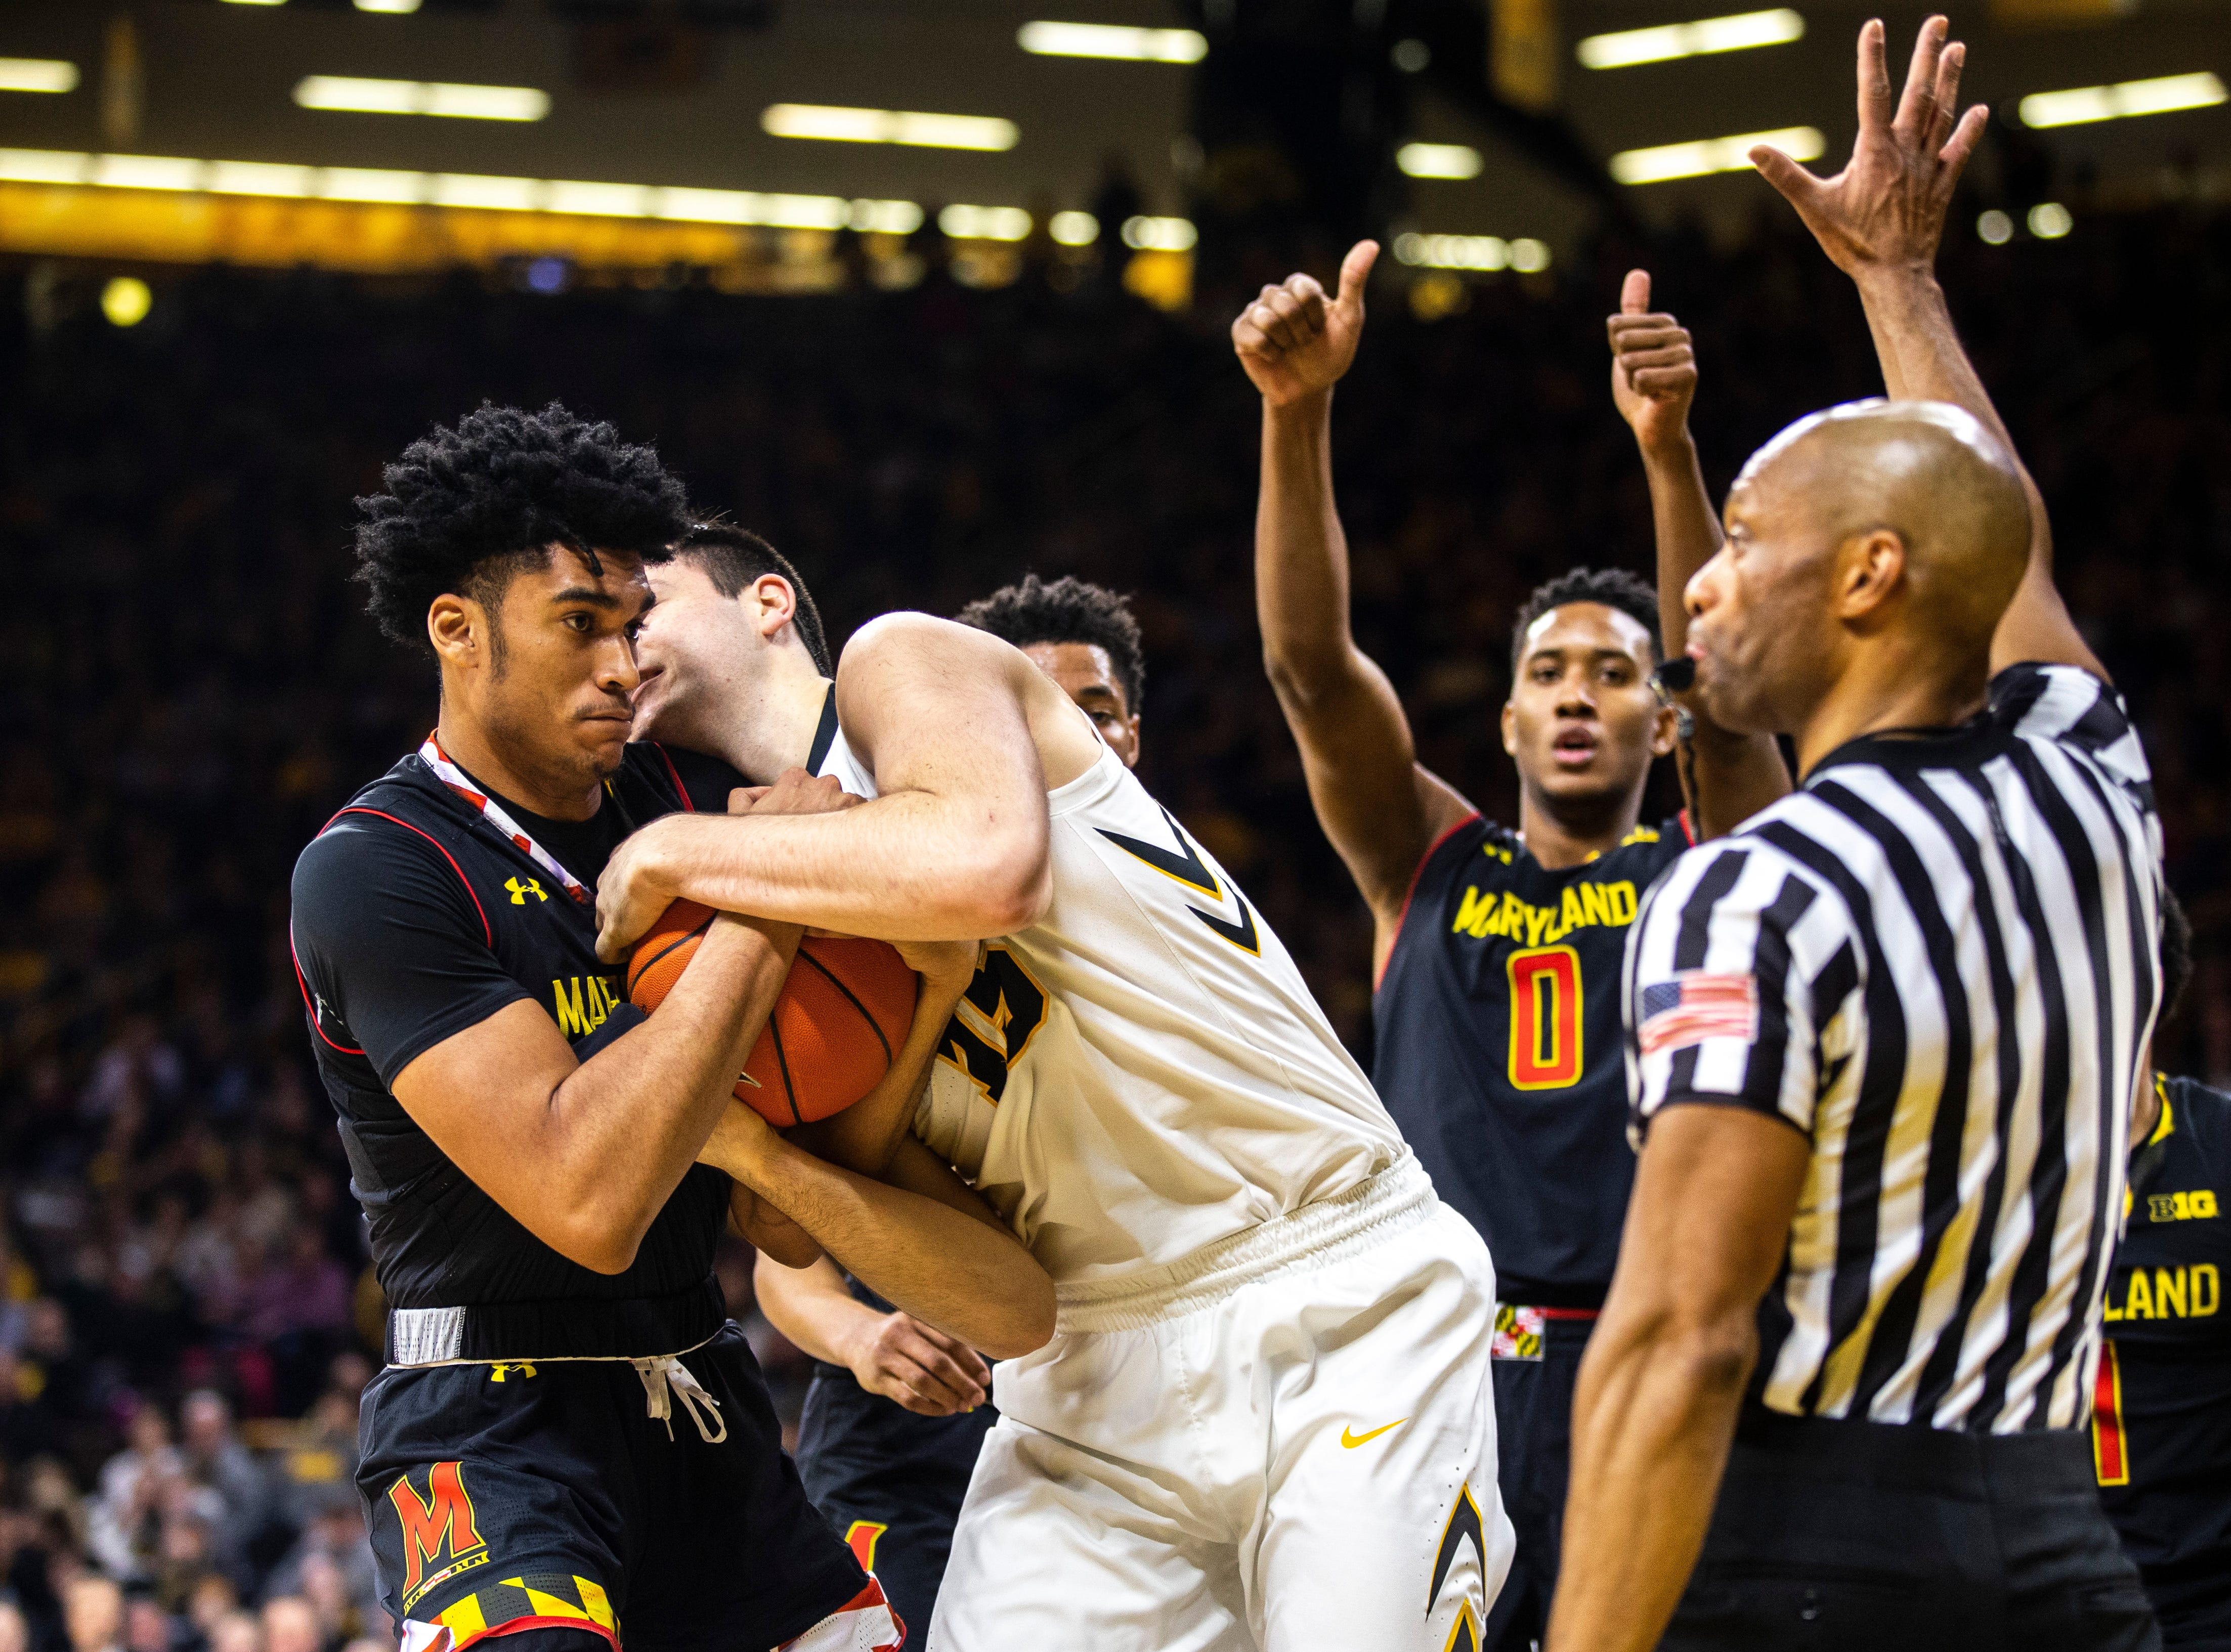 Iowa forward Ryan Kriener (15) battles for a jump ball against Maryland forward Ricky Lindo Jr. (14) during a NCAA Big Ten Conference men's basketball game on Tuesday, Feb. 19, 2019 at Carver-Hawkeye Arena in Iowa City, Iowa.